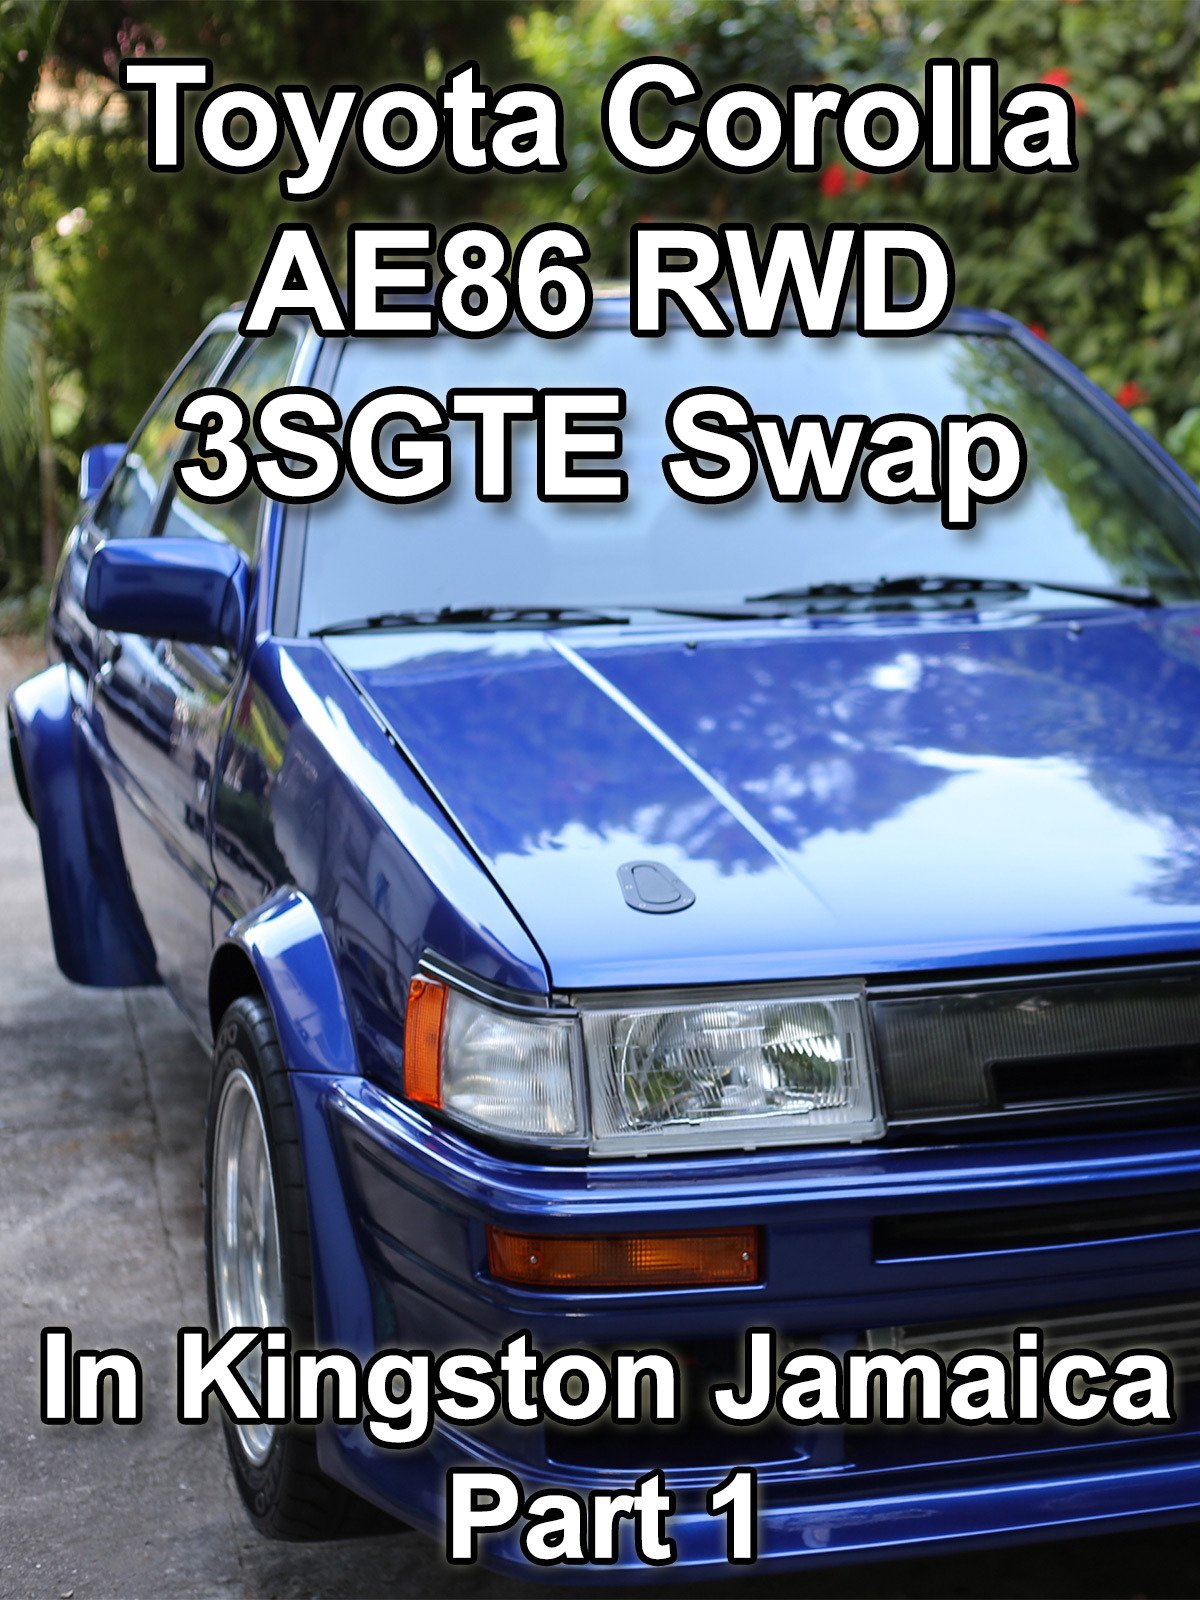 Review: Toyota Corolla AE86 RWD 3SGTE Swap in Kingston Jamaica Part 1 on Amazon Prime Instant Video UK